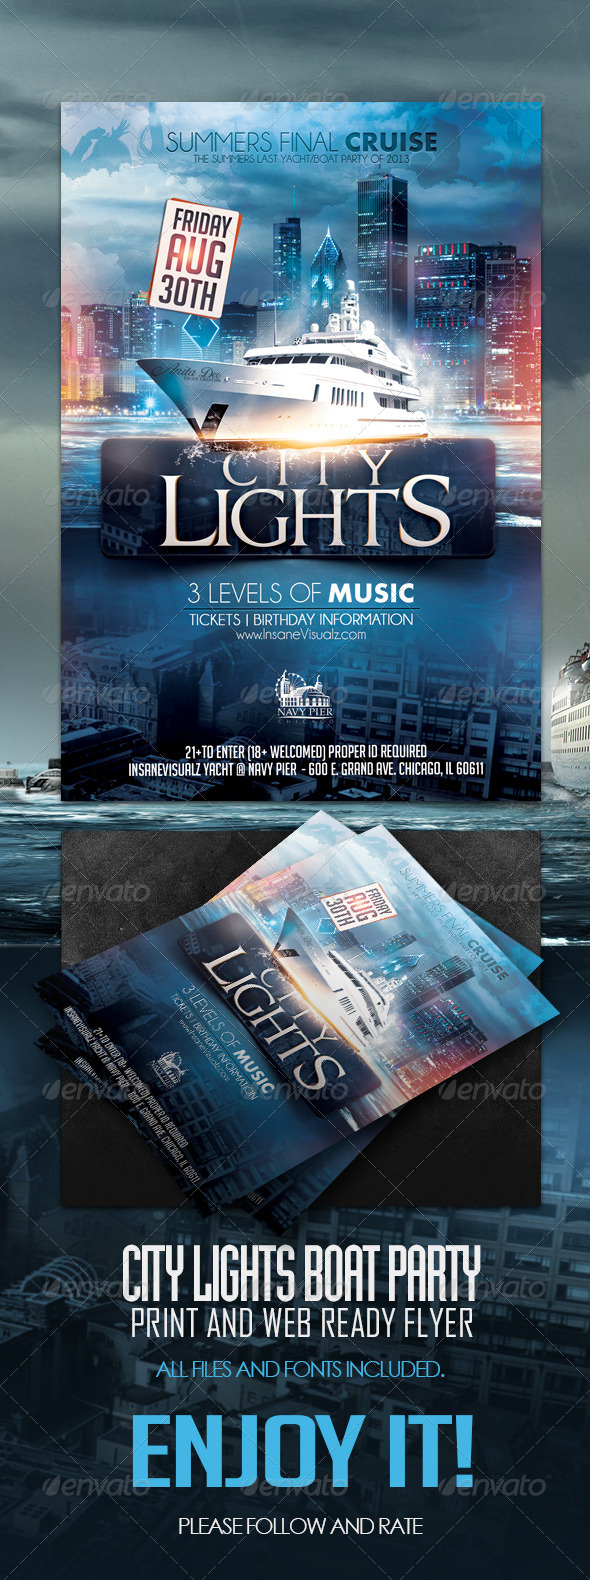 City Lights Boat Party - Events Flyers